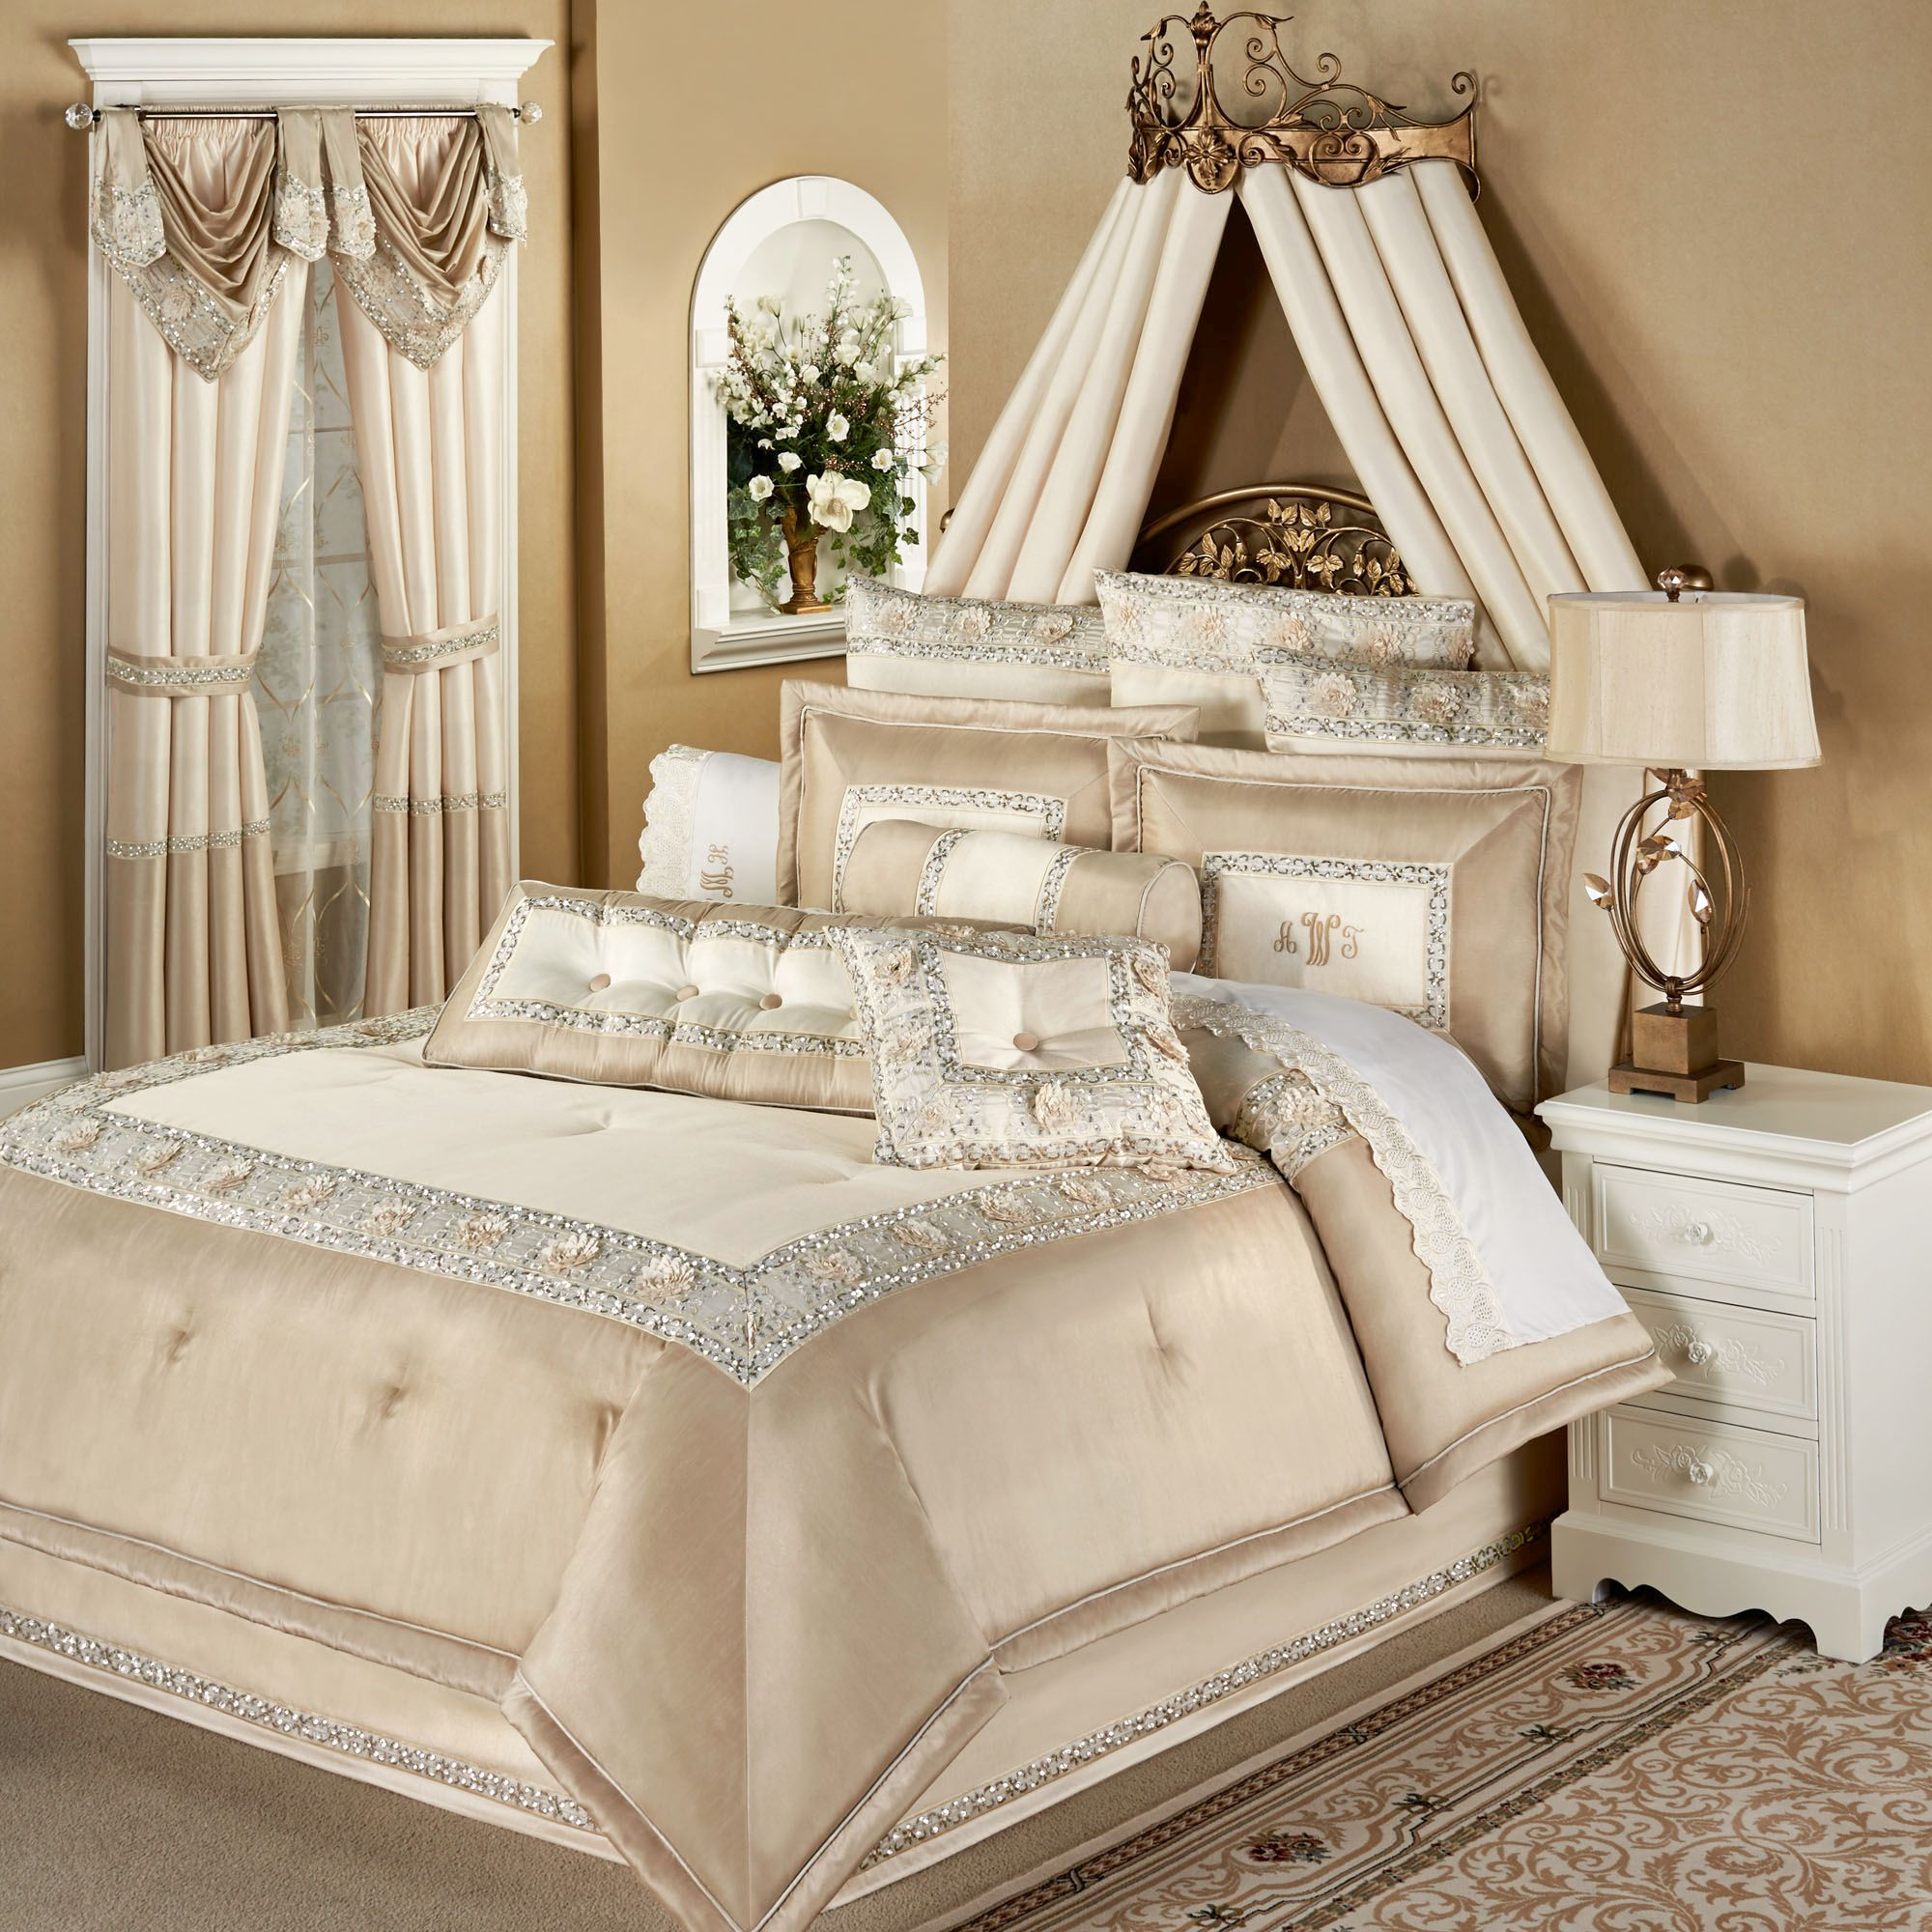 Bedroom  Interesting Design Bed King Size With Luxury Comforter Sets. Bedroom  Interesting Design Bed King Size With Luxury Comforter